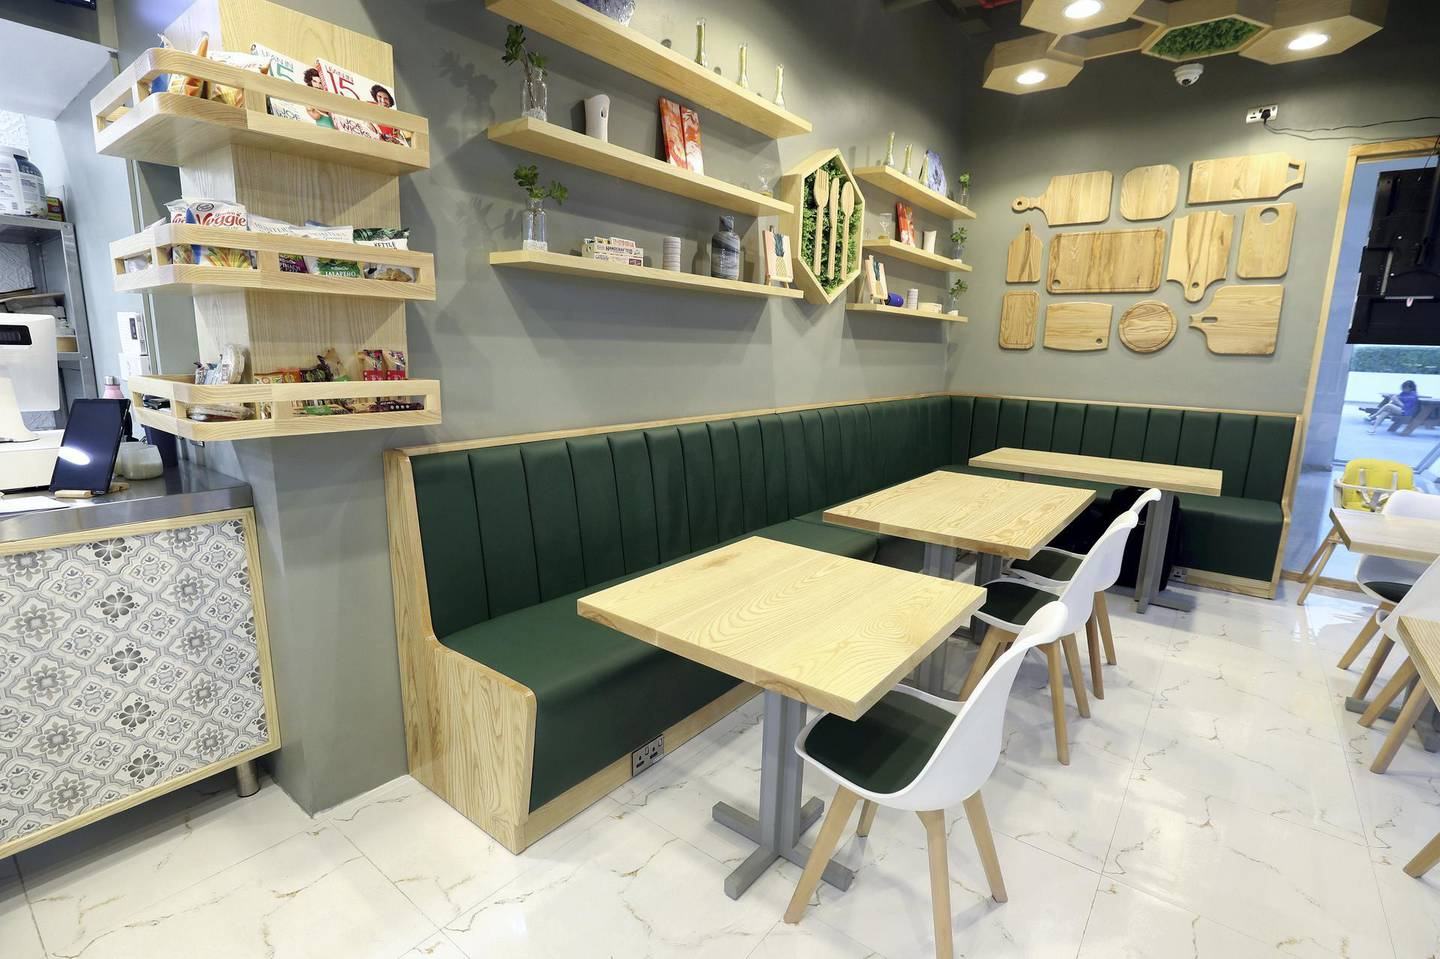 Abu Dhabi, United Arab Emirates - September 15, 2019: A look at the newly opened Sweet Greens café. They have a special focus on being healthy and environmentally friendly. Sunday the 15th of September 2019. Rihan Heights, Abu Dhabi. Chris Whiteoak / The National